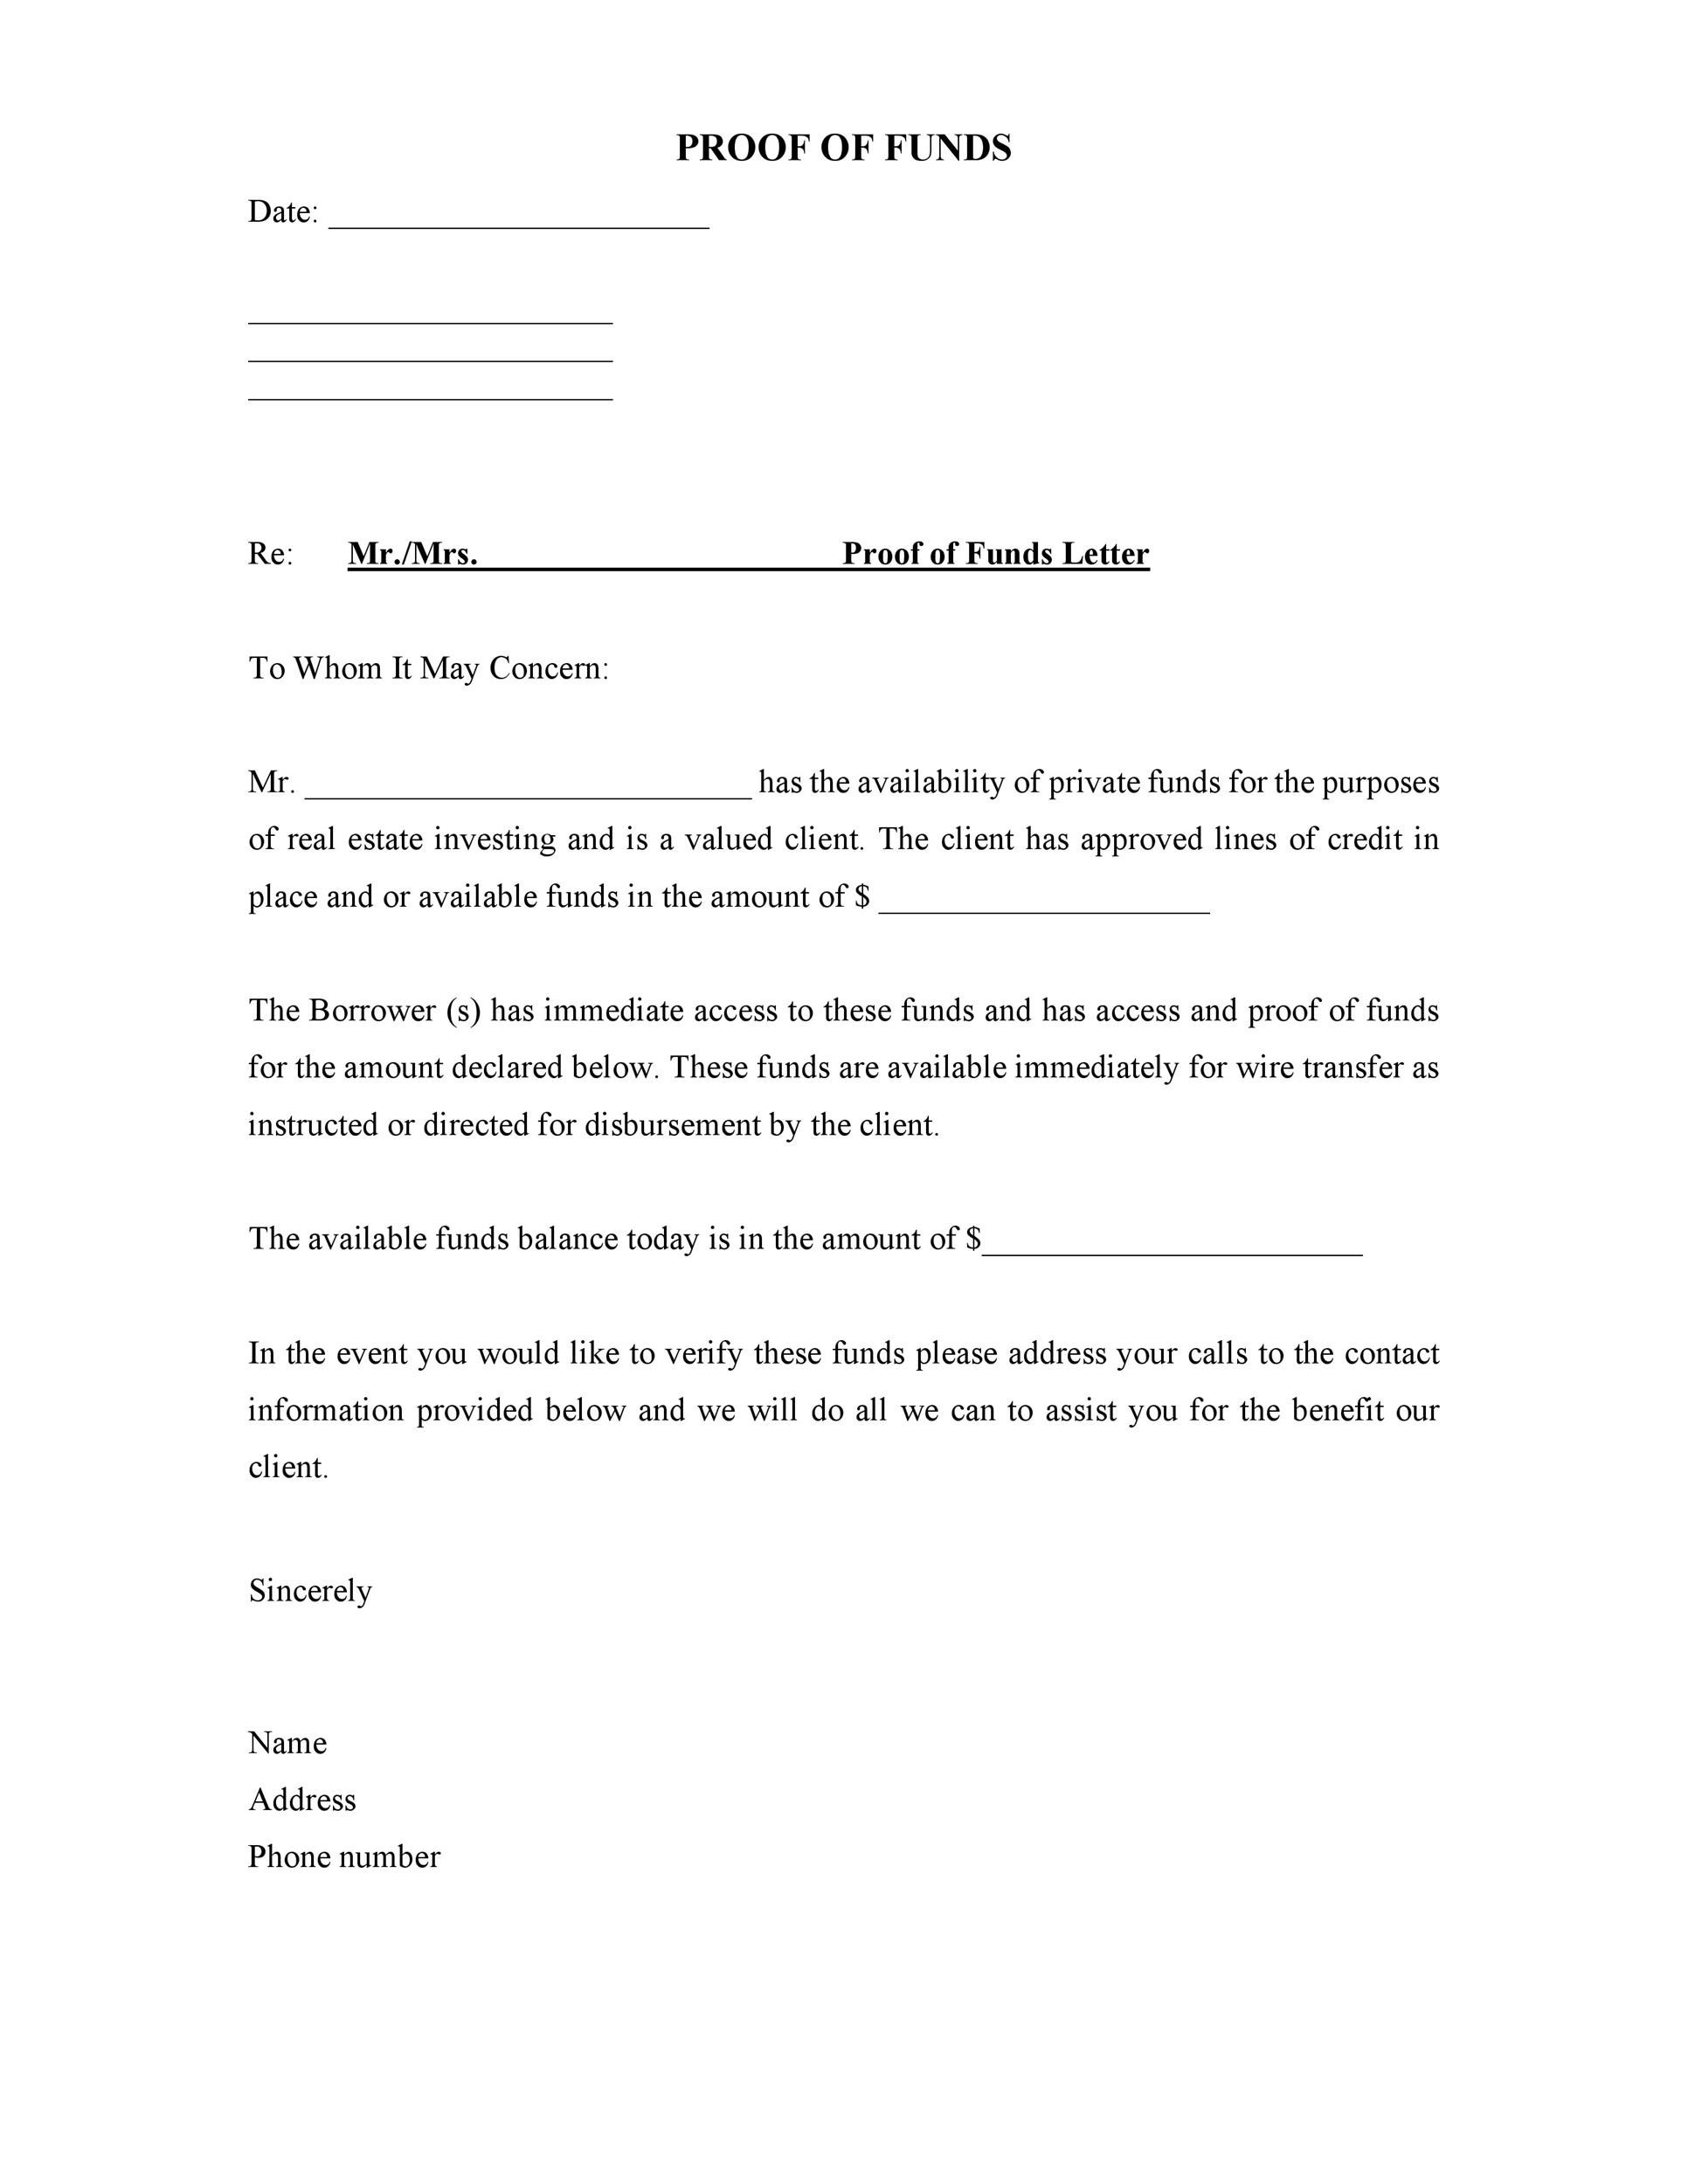 25 Best Proof Of Funds Letter Templates Templatelab